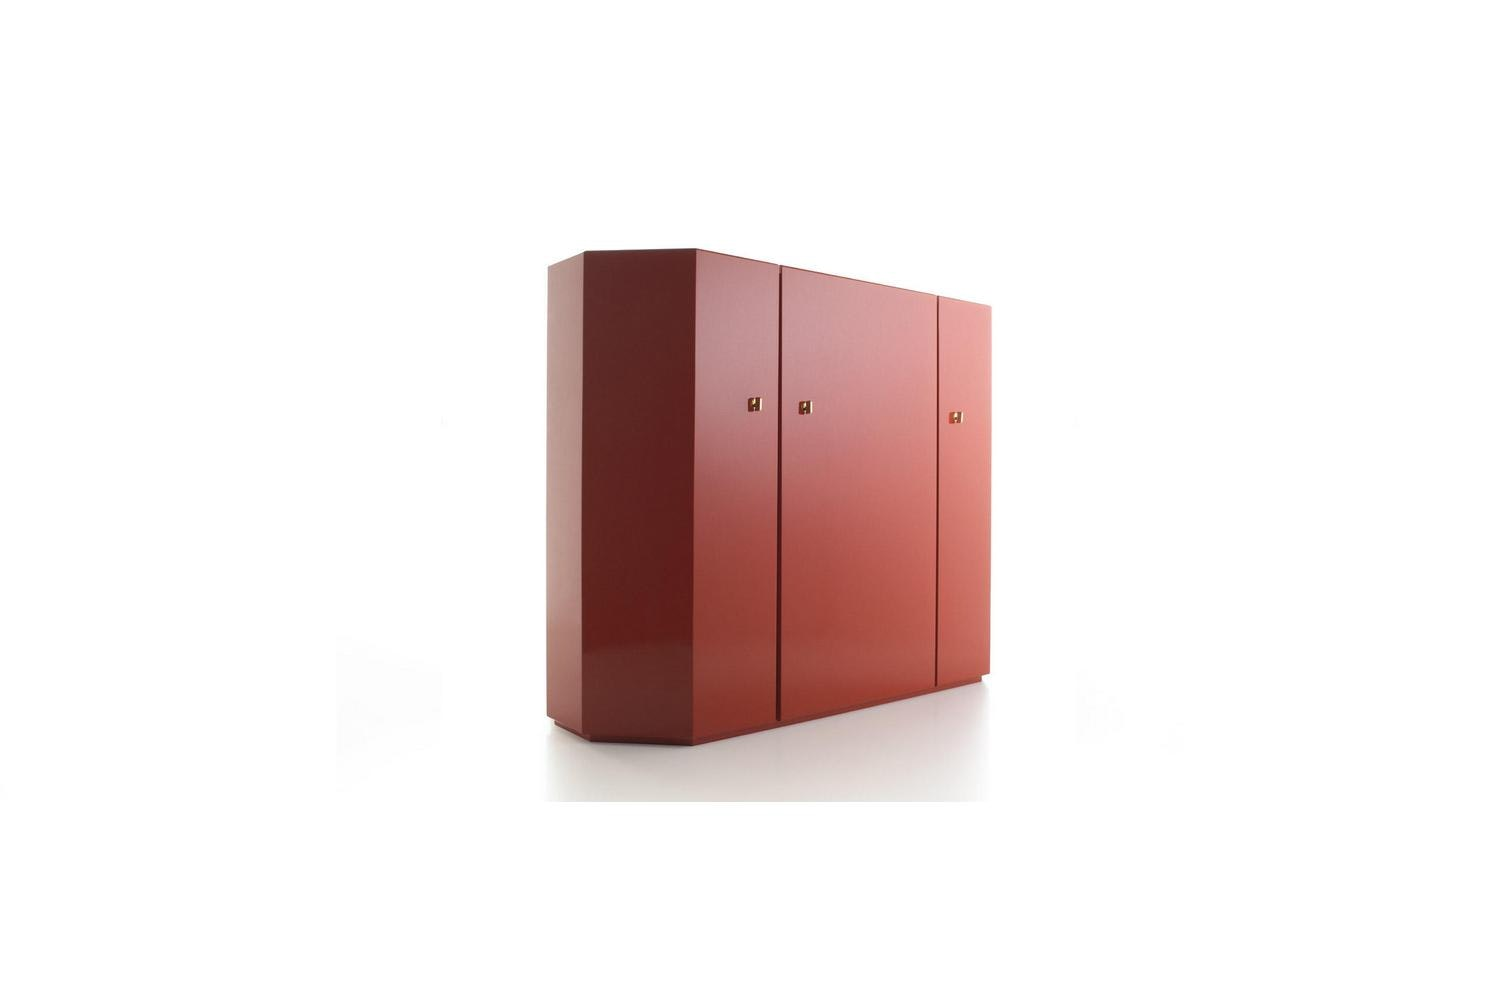 W51 Bramante Modular Cupboard Unit by Kazuhide Takahama for Cassina